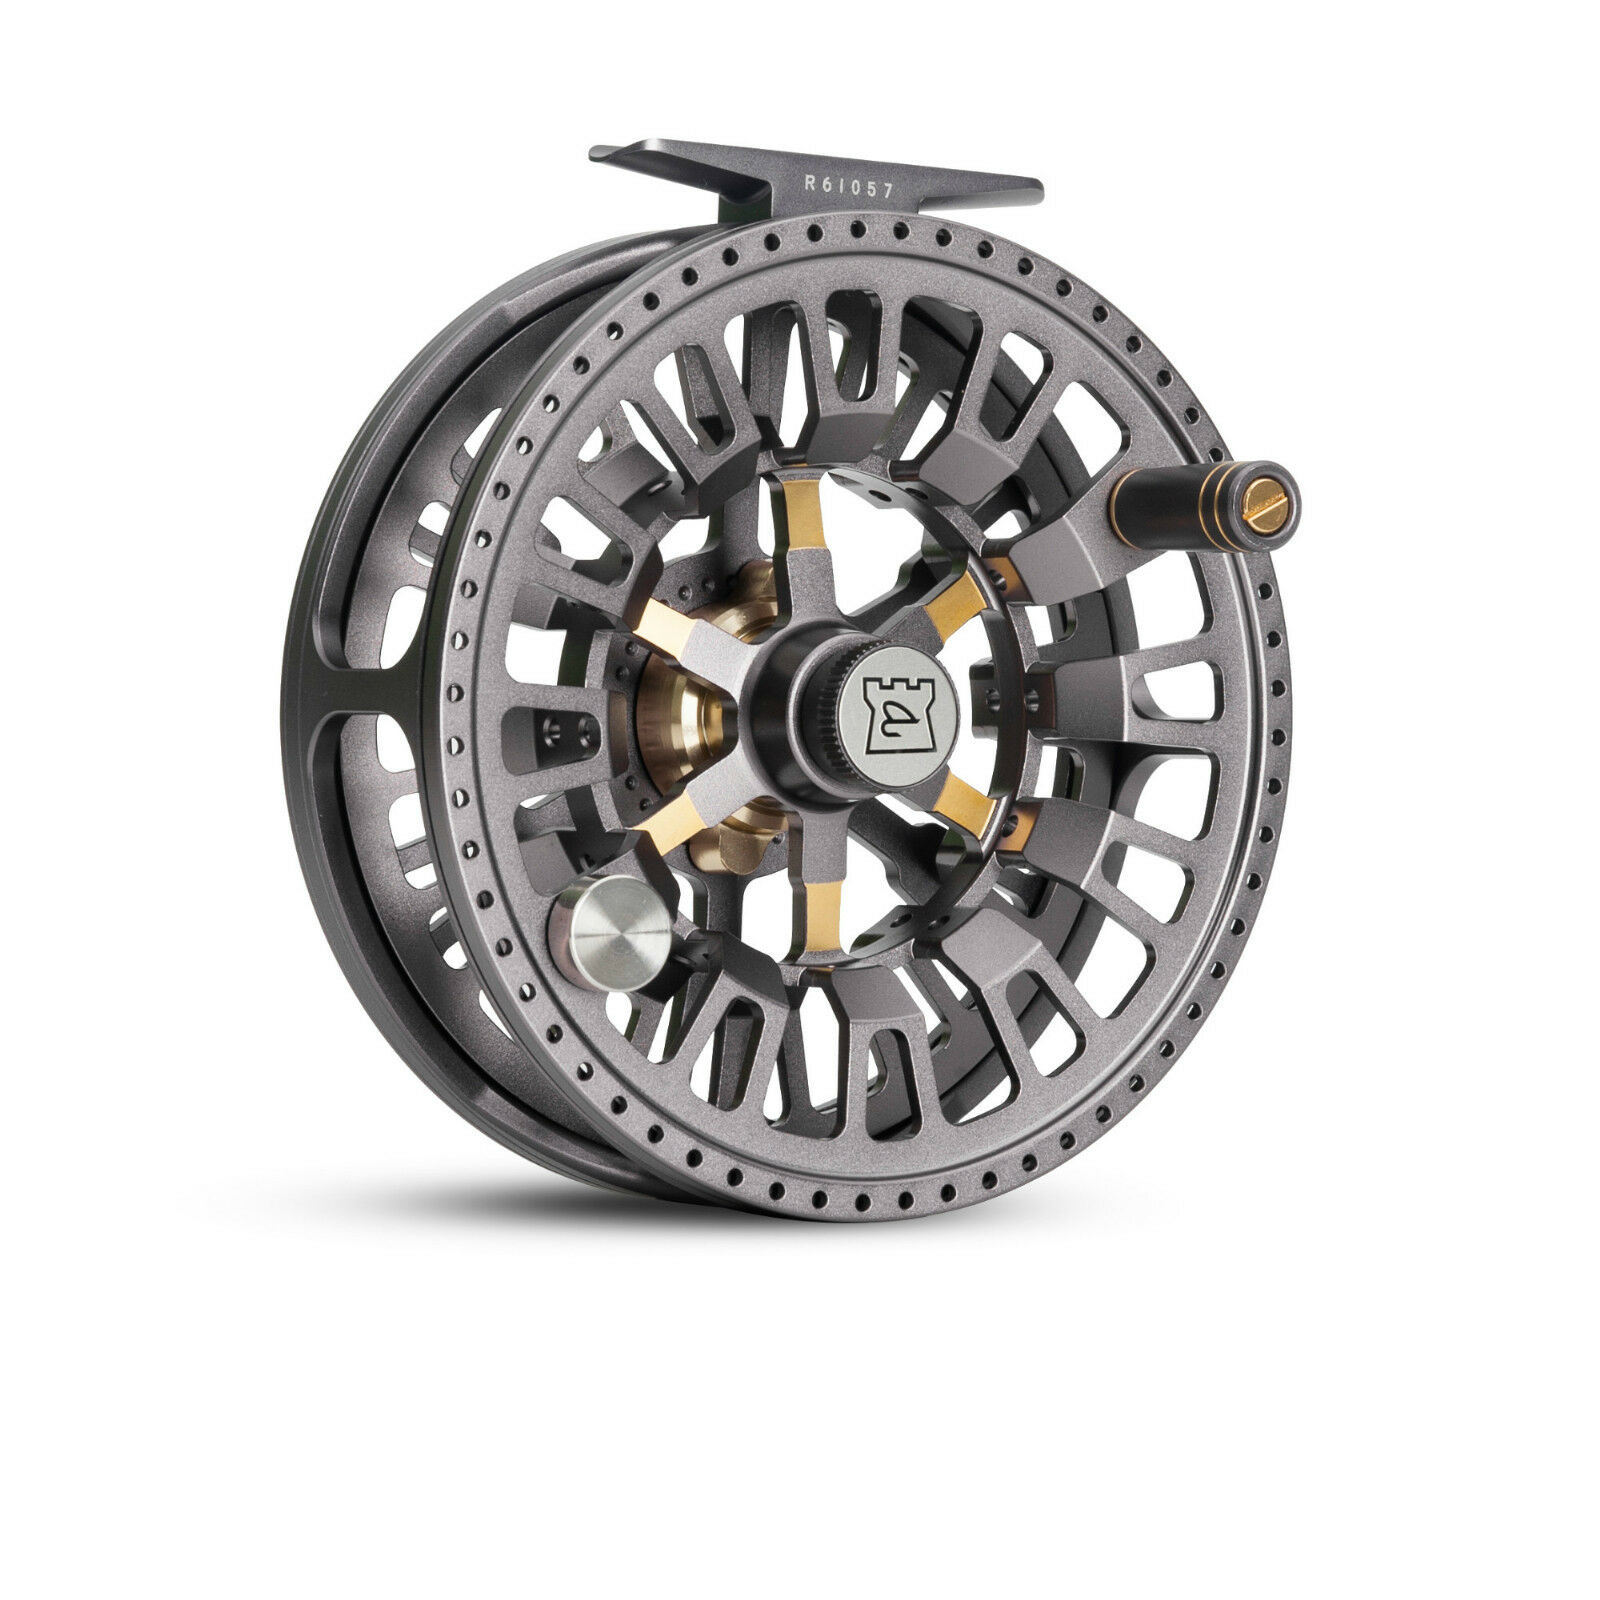 NEW HARDY ULTRALITE 7/8/9 CADD 7000 7/8/9 ULTRALITE WEIGHT LRG ARBOR FLY FISHING REEL TITANIUM e2ed55